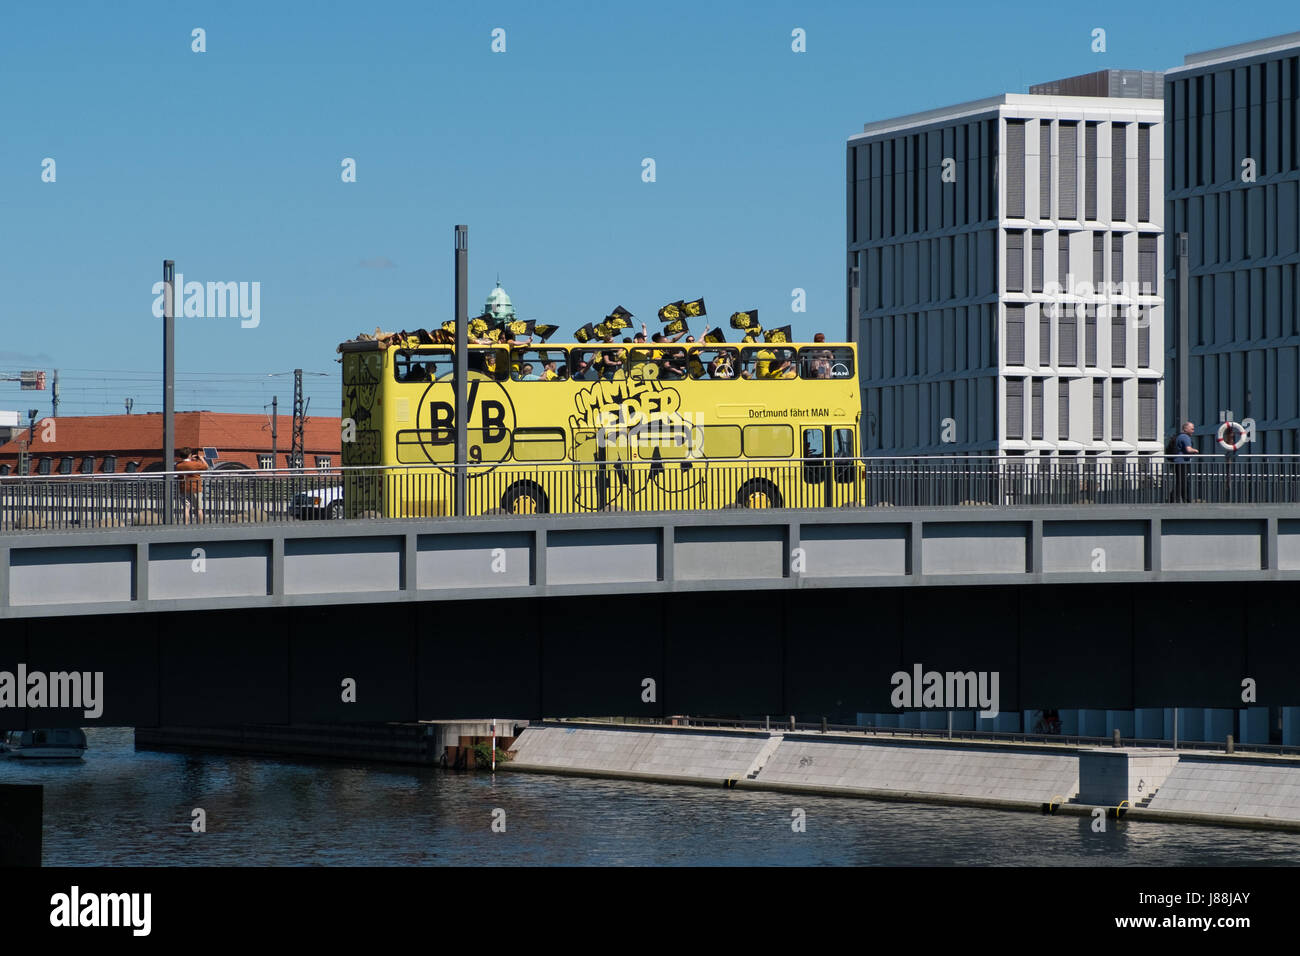 Berlin, Germany - may 27, 2017: BVB Fans / Borussia Dortmund Fan Bus in Berlin on the day of the DFB-Pokal final. Stock Photo